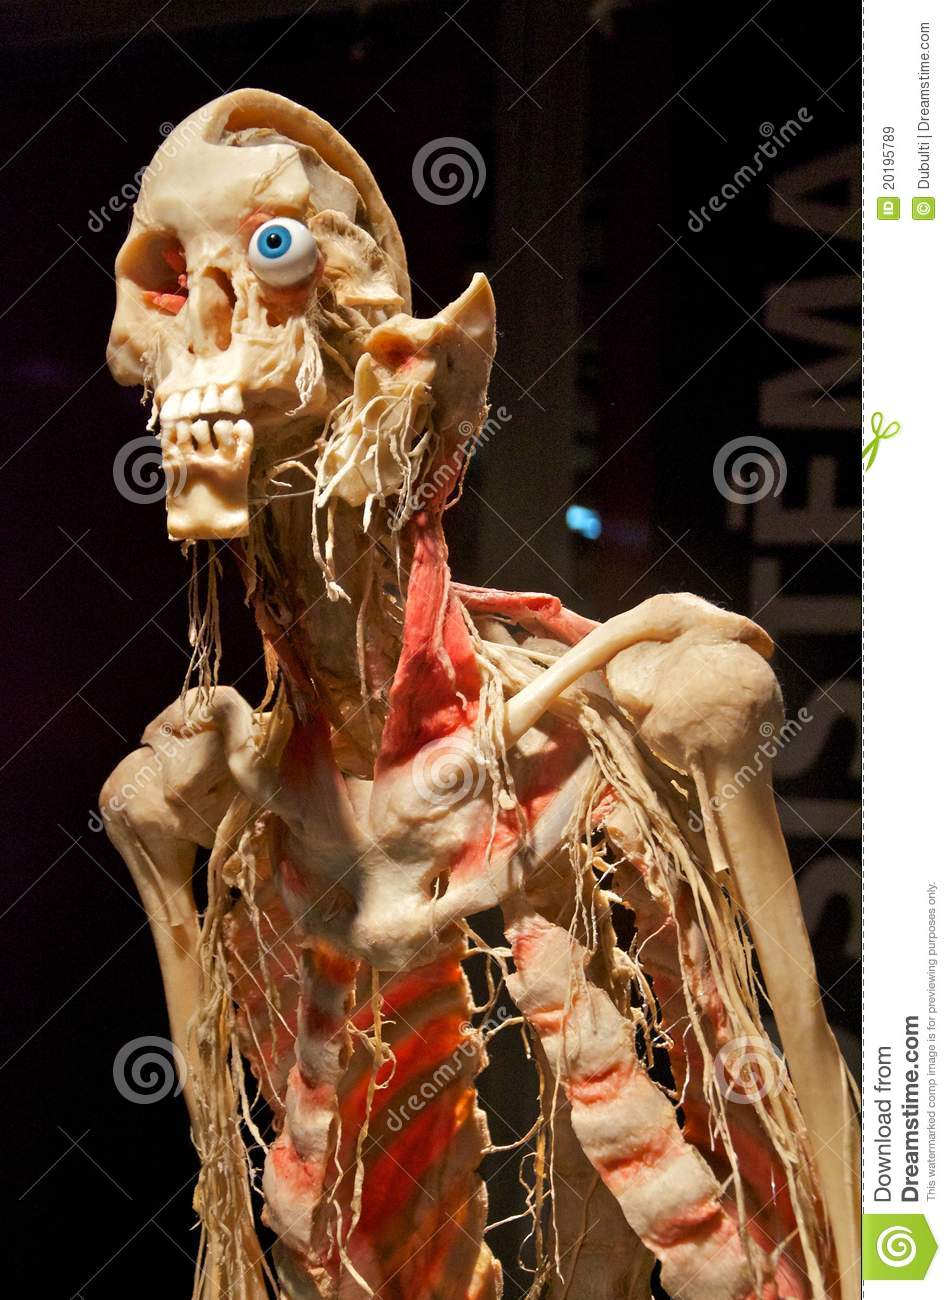 Bodies Revealed Exhibition Of Human Dead Bodies Editorial Stock ...